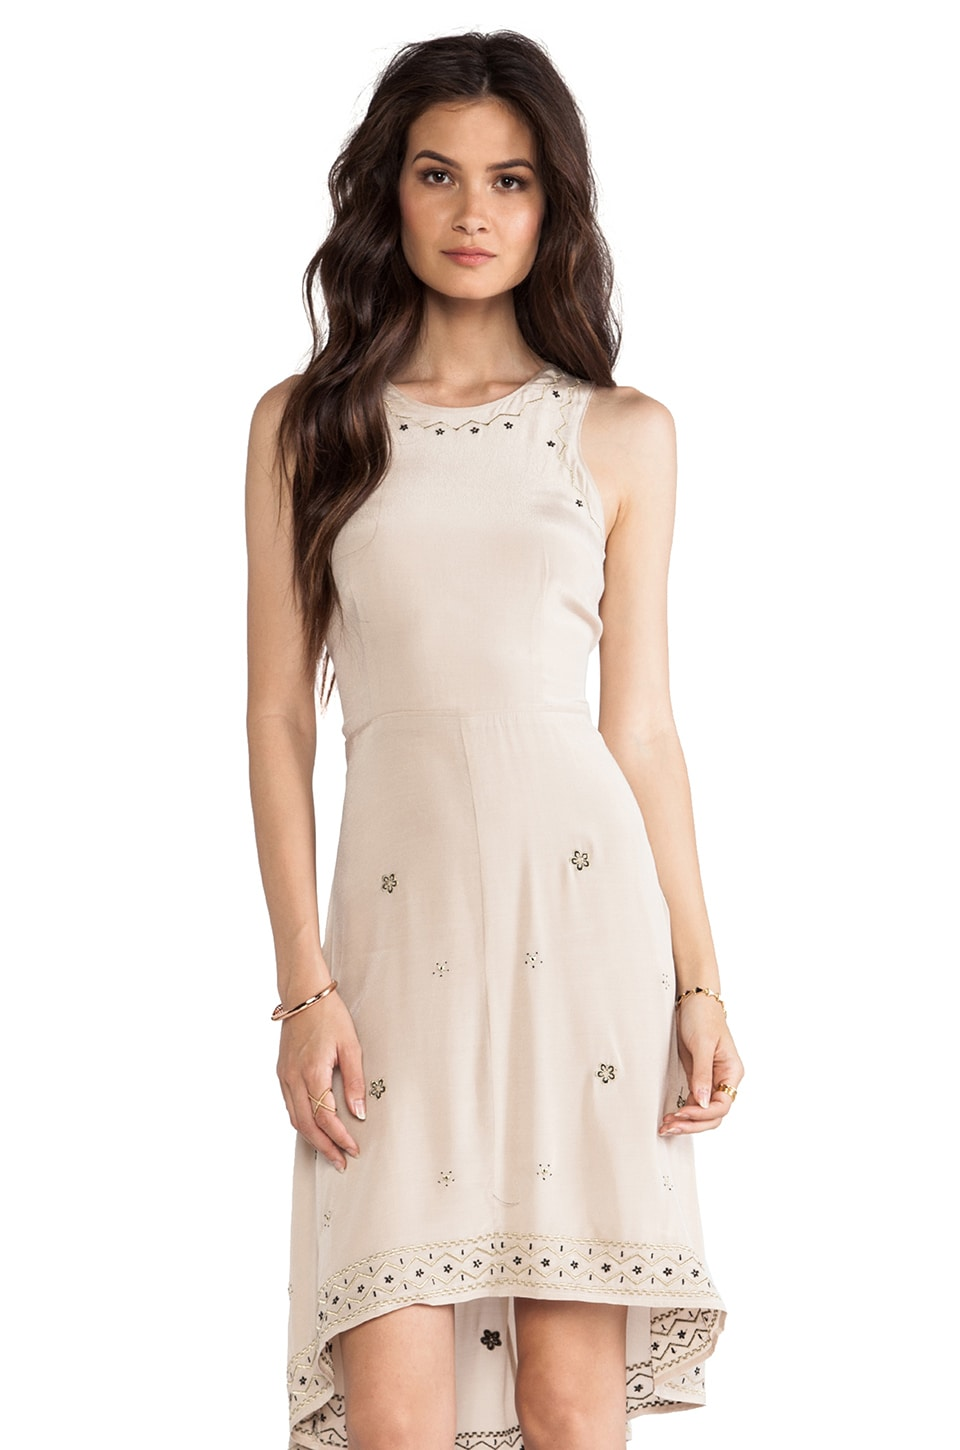 Wish Dainty Dress in Nude